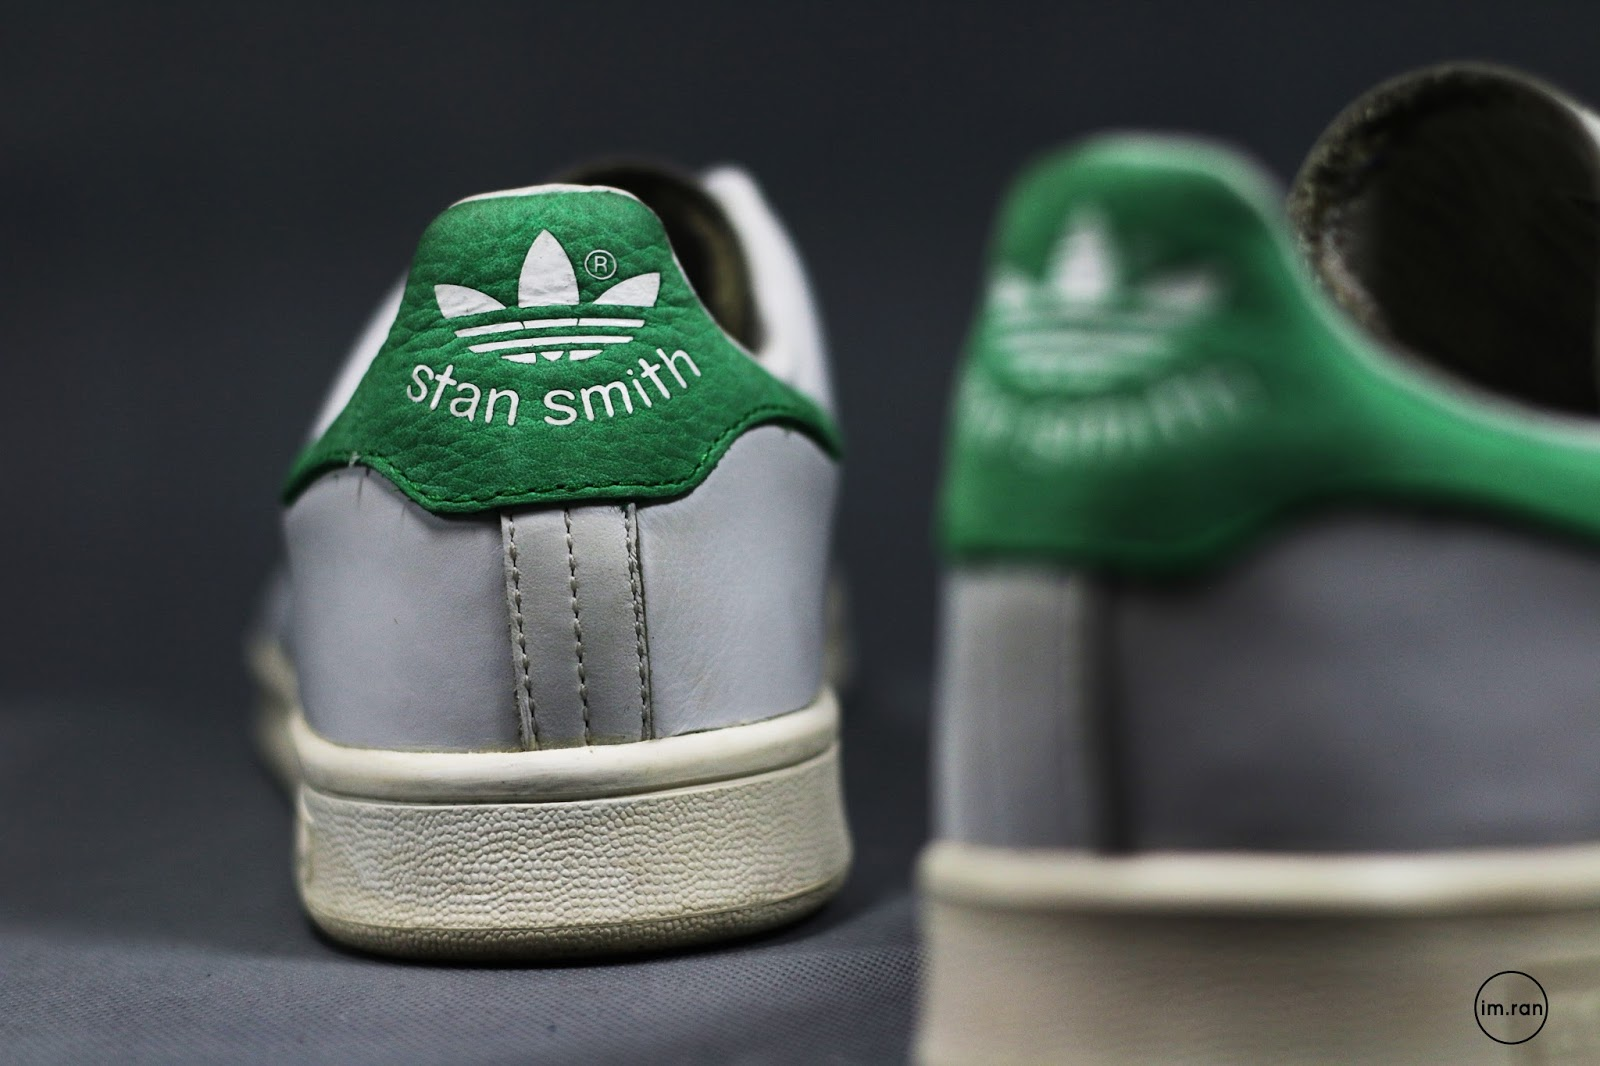 wholesale dealer b2df4 f7849 IAM-RAN: IZAR'S COLLECTION : Stan Smith